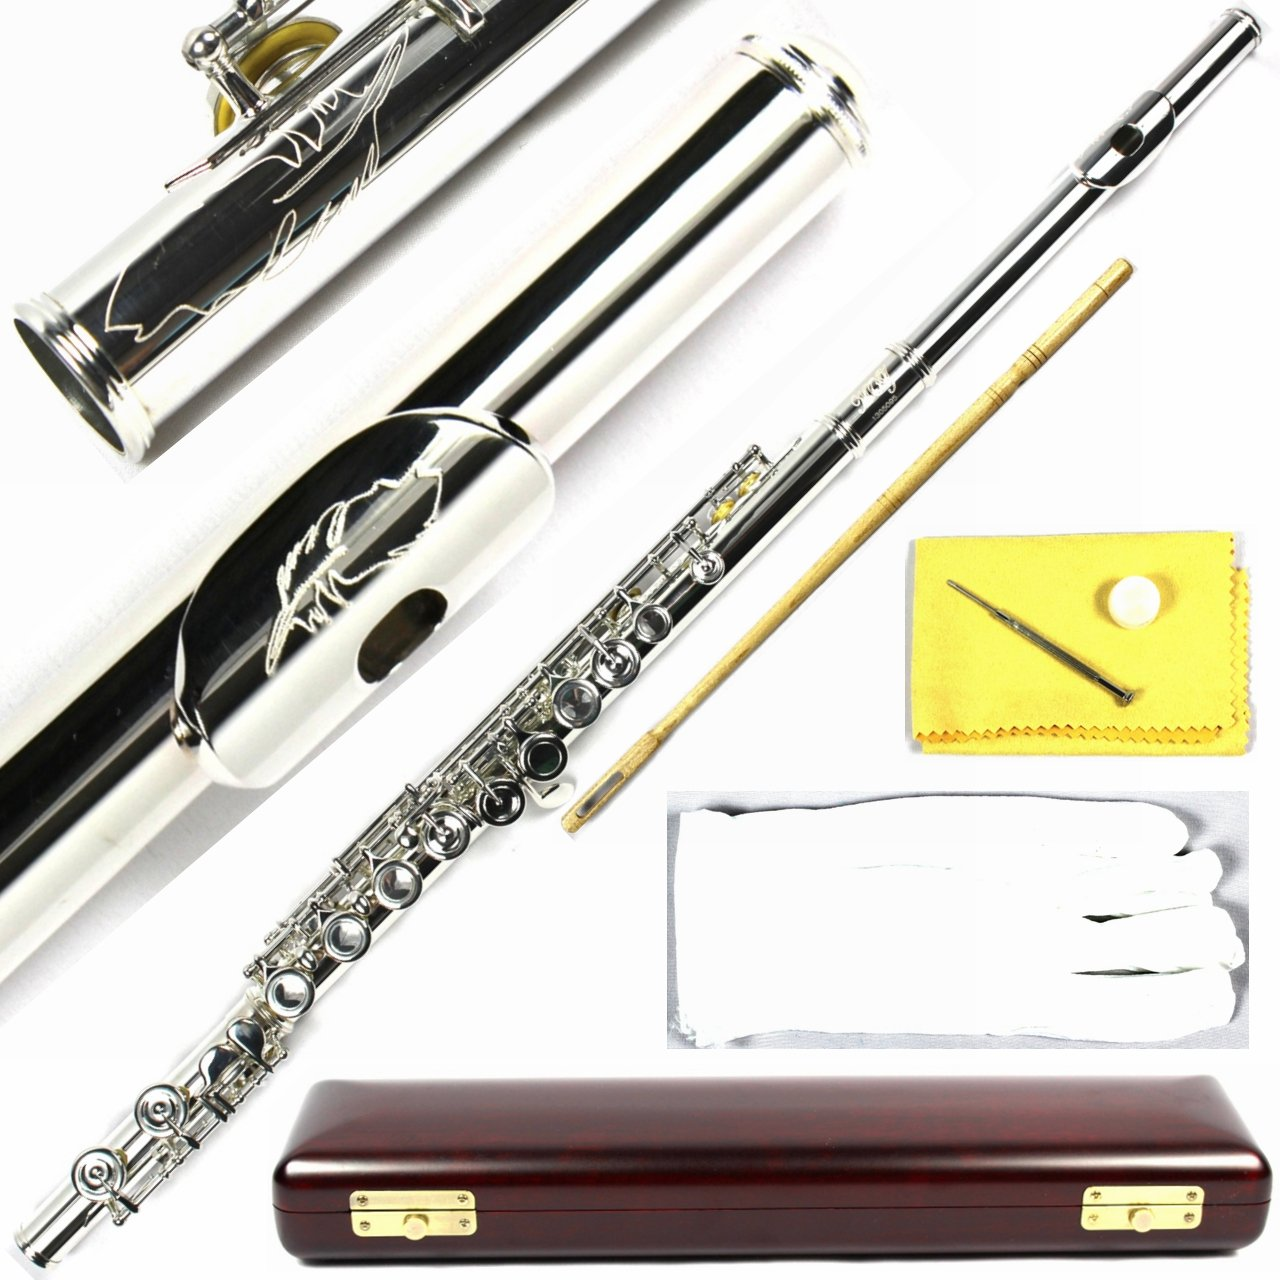 Engraved Design Wood Case Italian Pads 16 Keys Silver Plated Close Hole C Flute Moz-1951